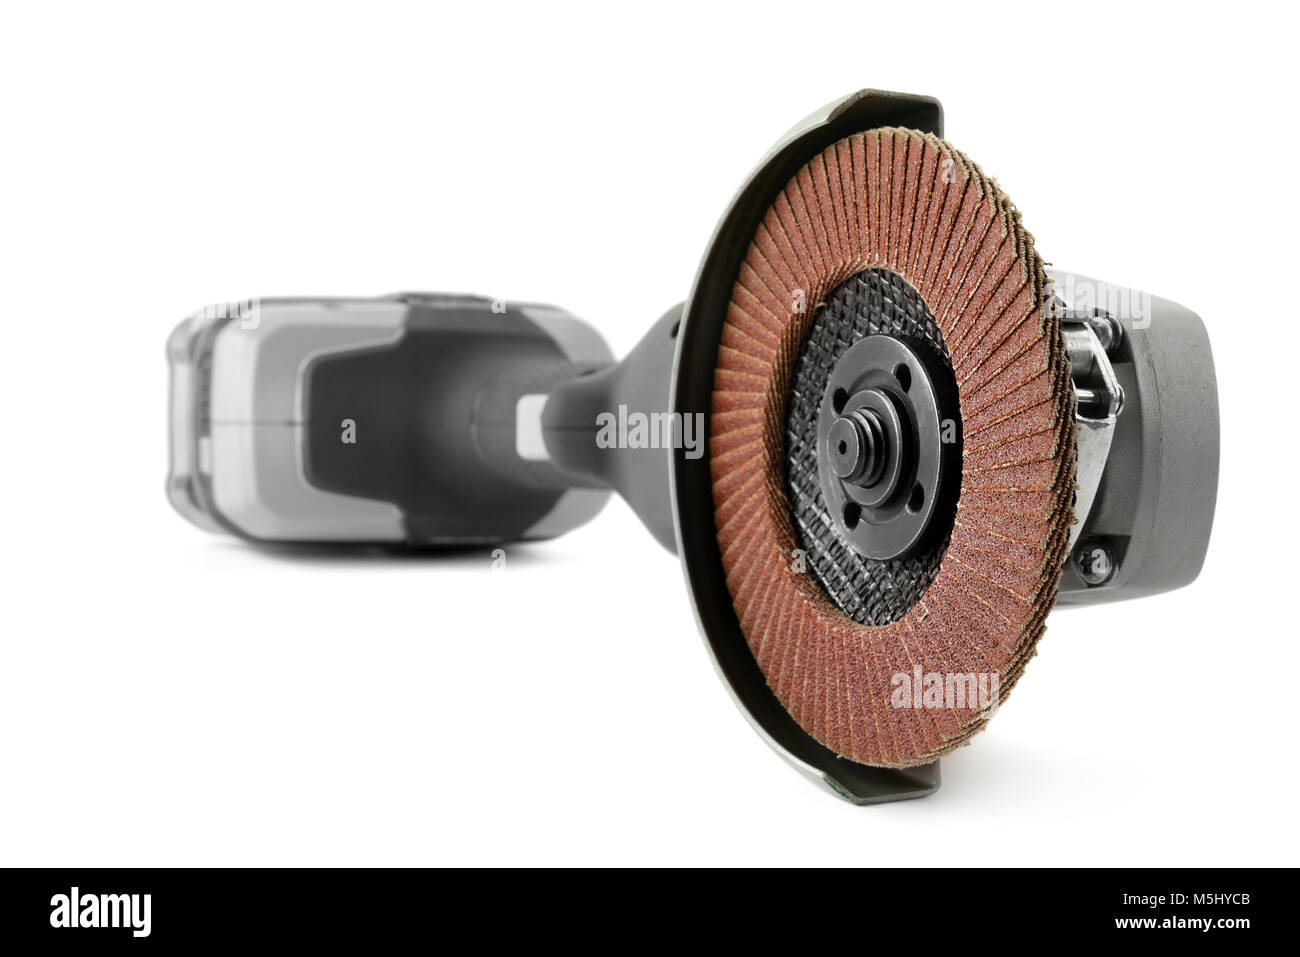 Battery angle grinder isolated on white background. Focus on foreground - Stock Image